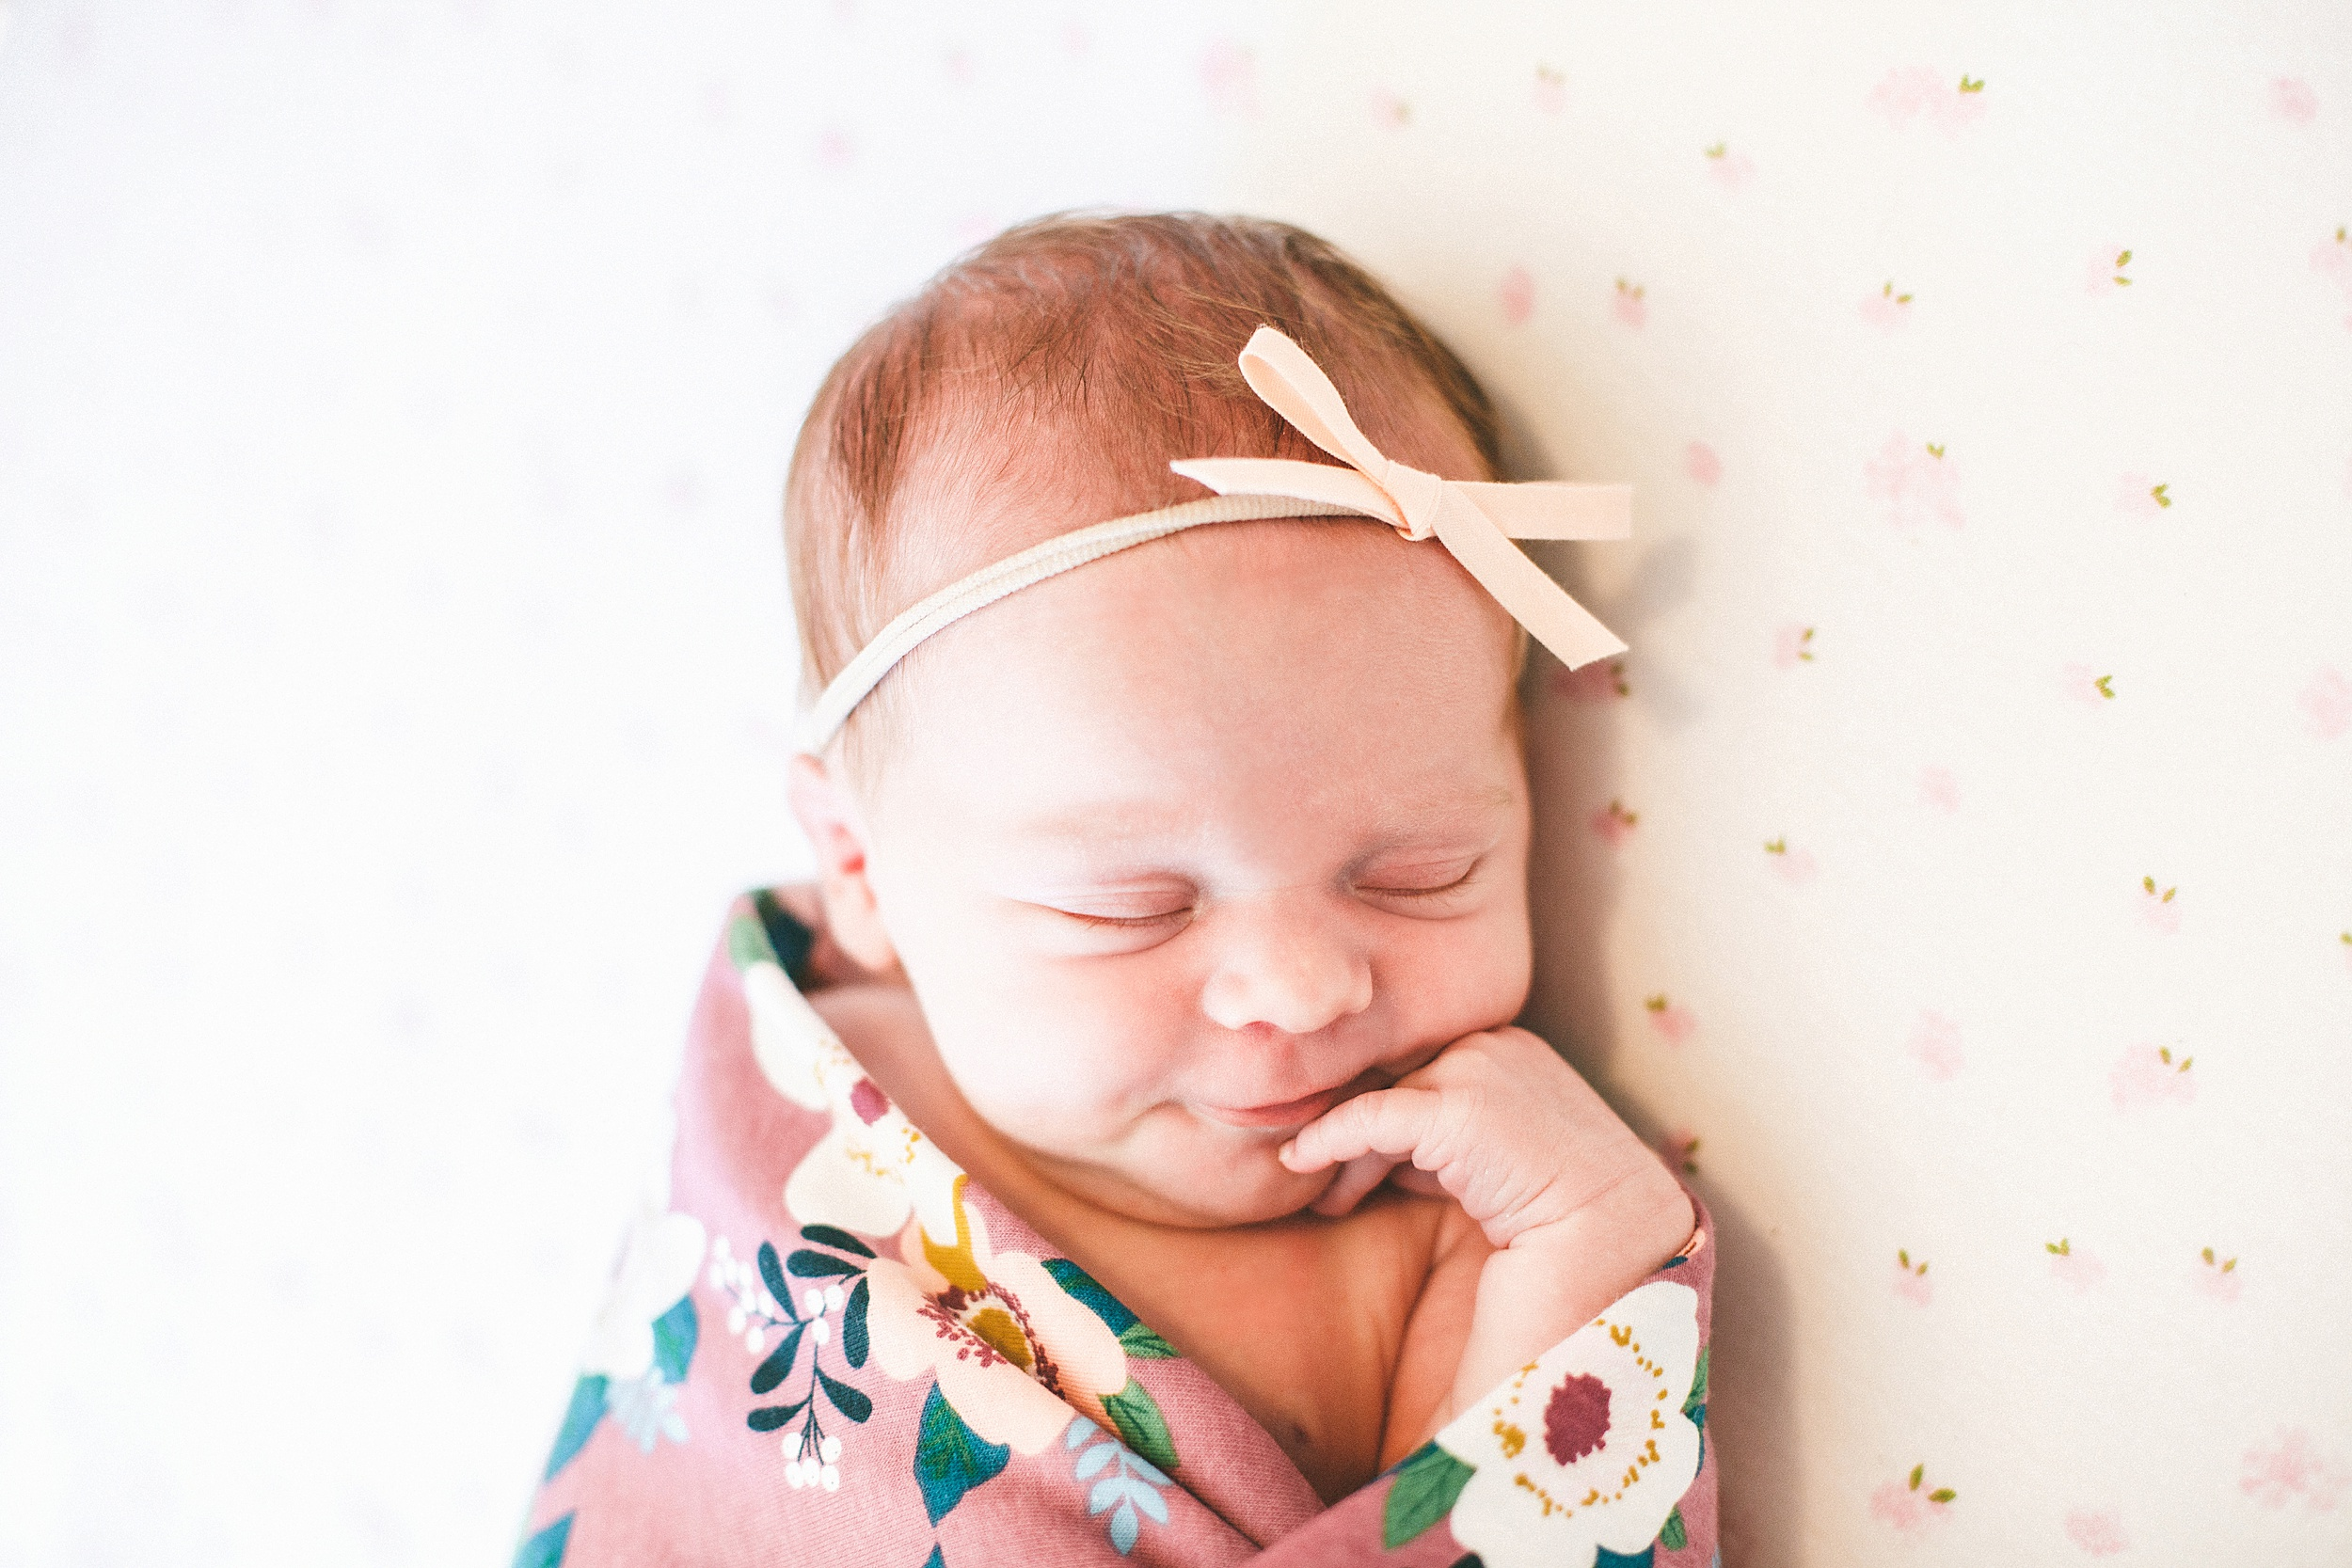 Kelly_Kester_Photography_Newborn_Baby.jpg